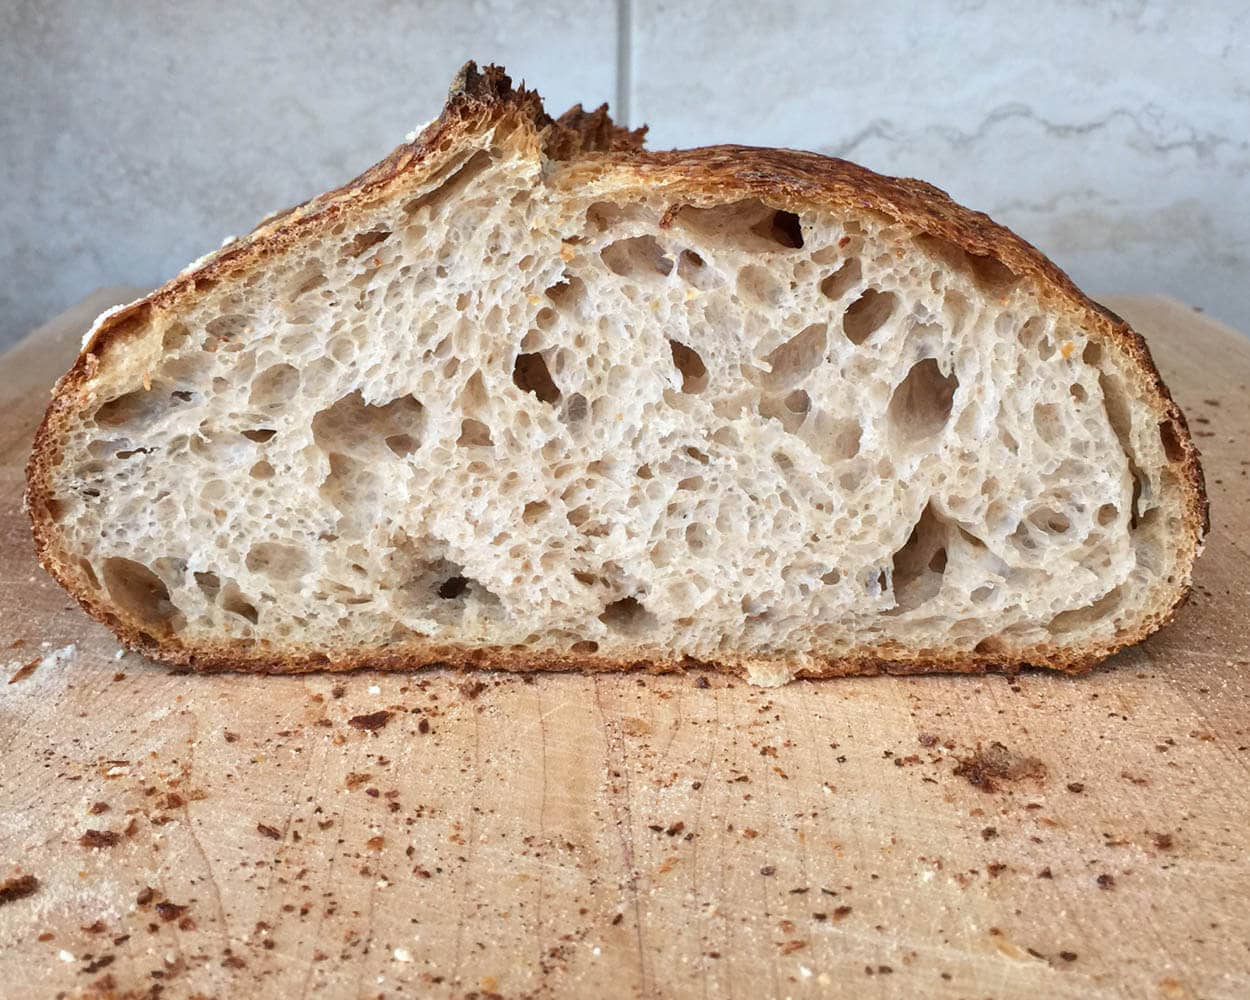 Naturally leavened sourdough, baking with steam in home oven